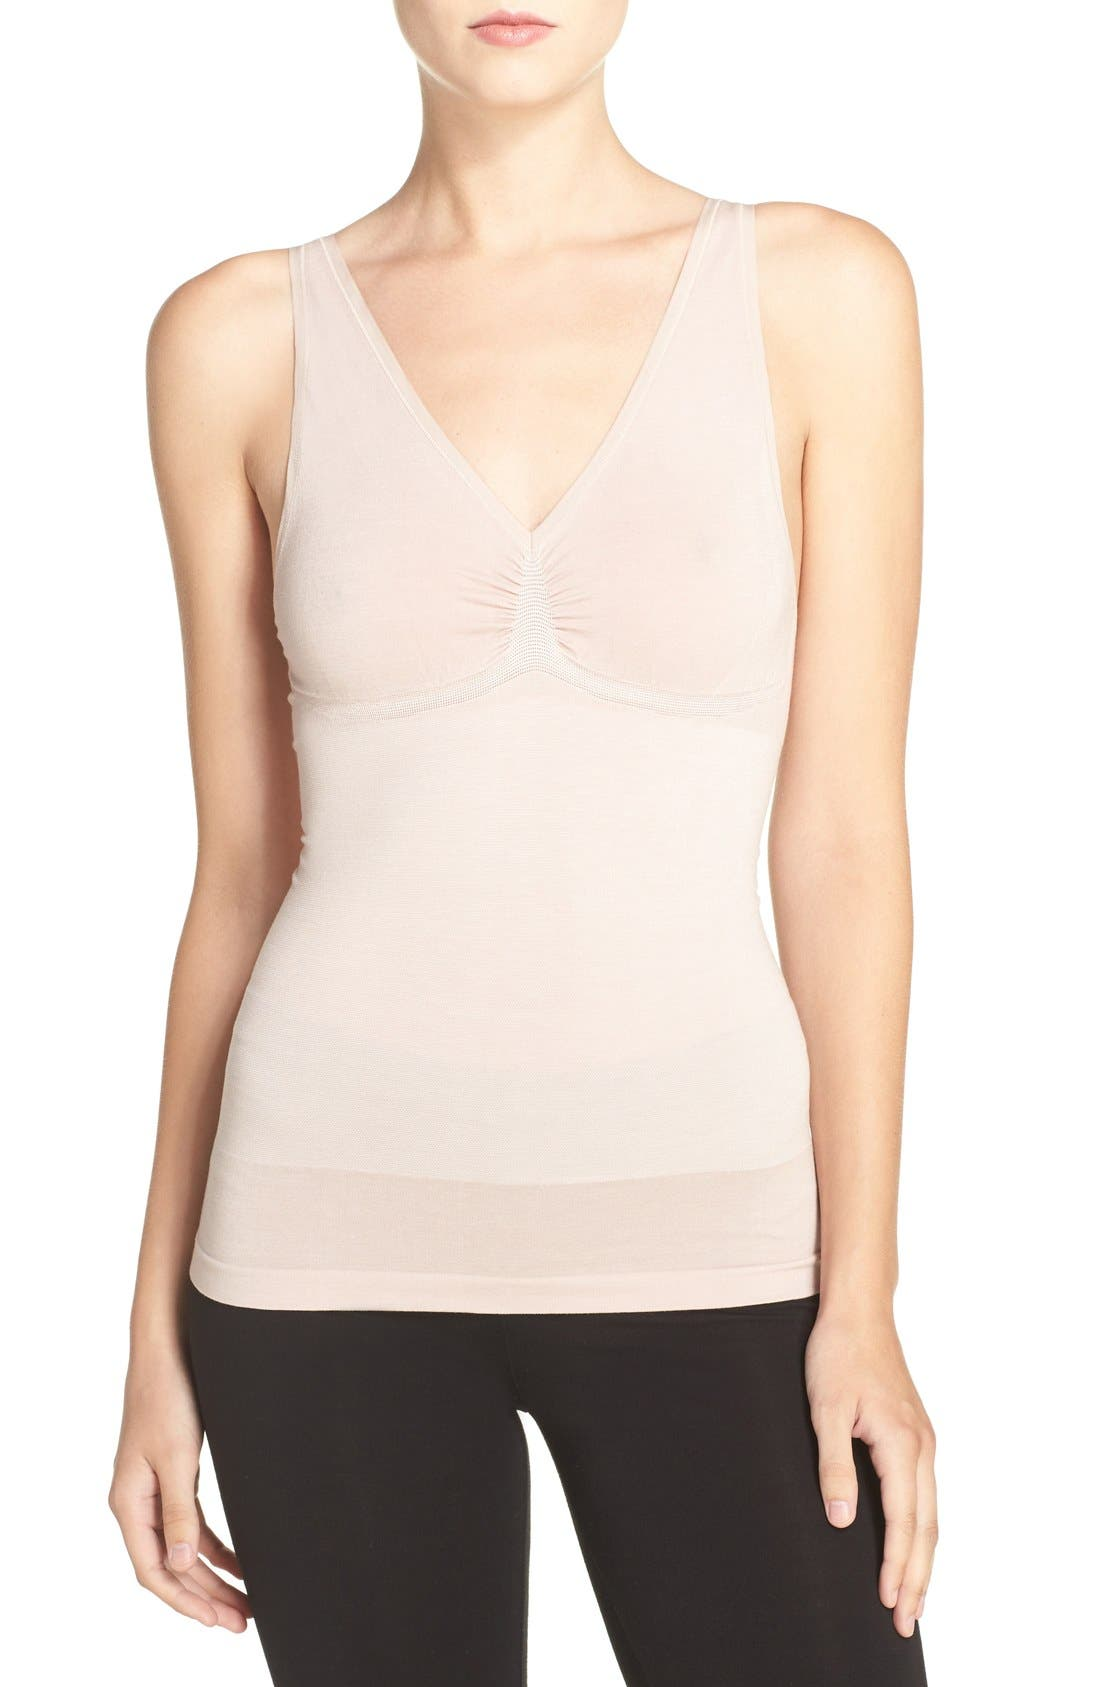 Alternate Image 1 Selected - Yummie Adella Convertible Smoother Camisole (2 for $58)